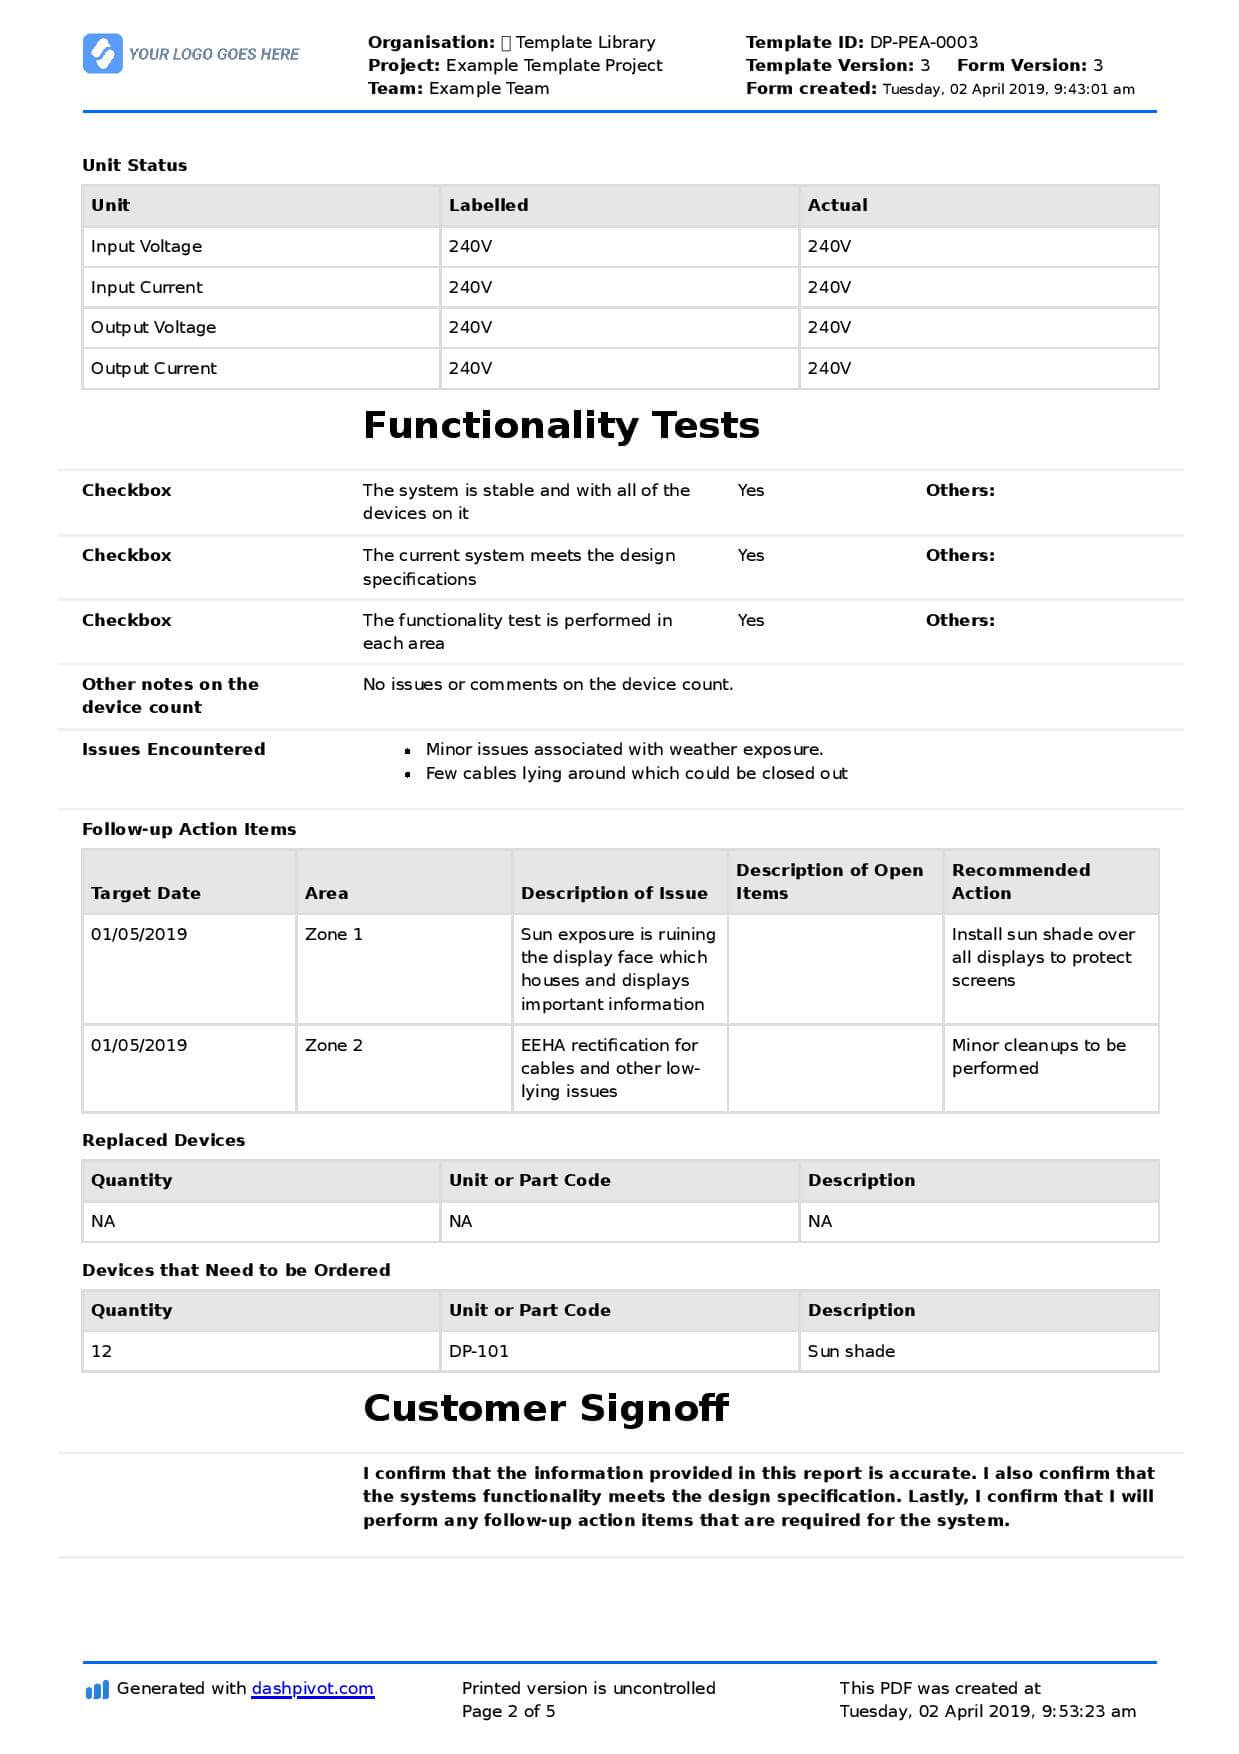 Field Service Report Template (Better Format Than Word For Field Report Template